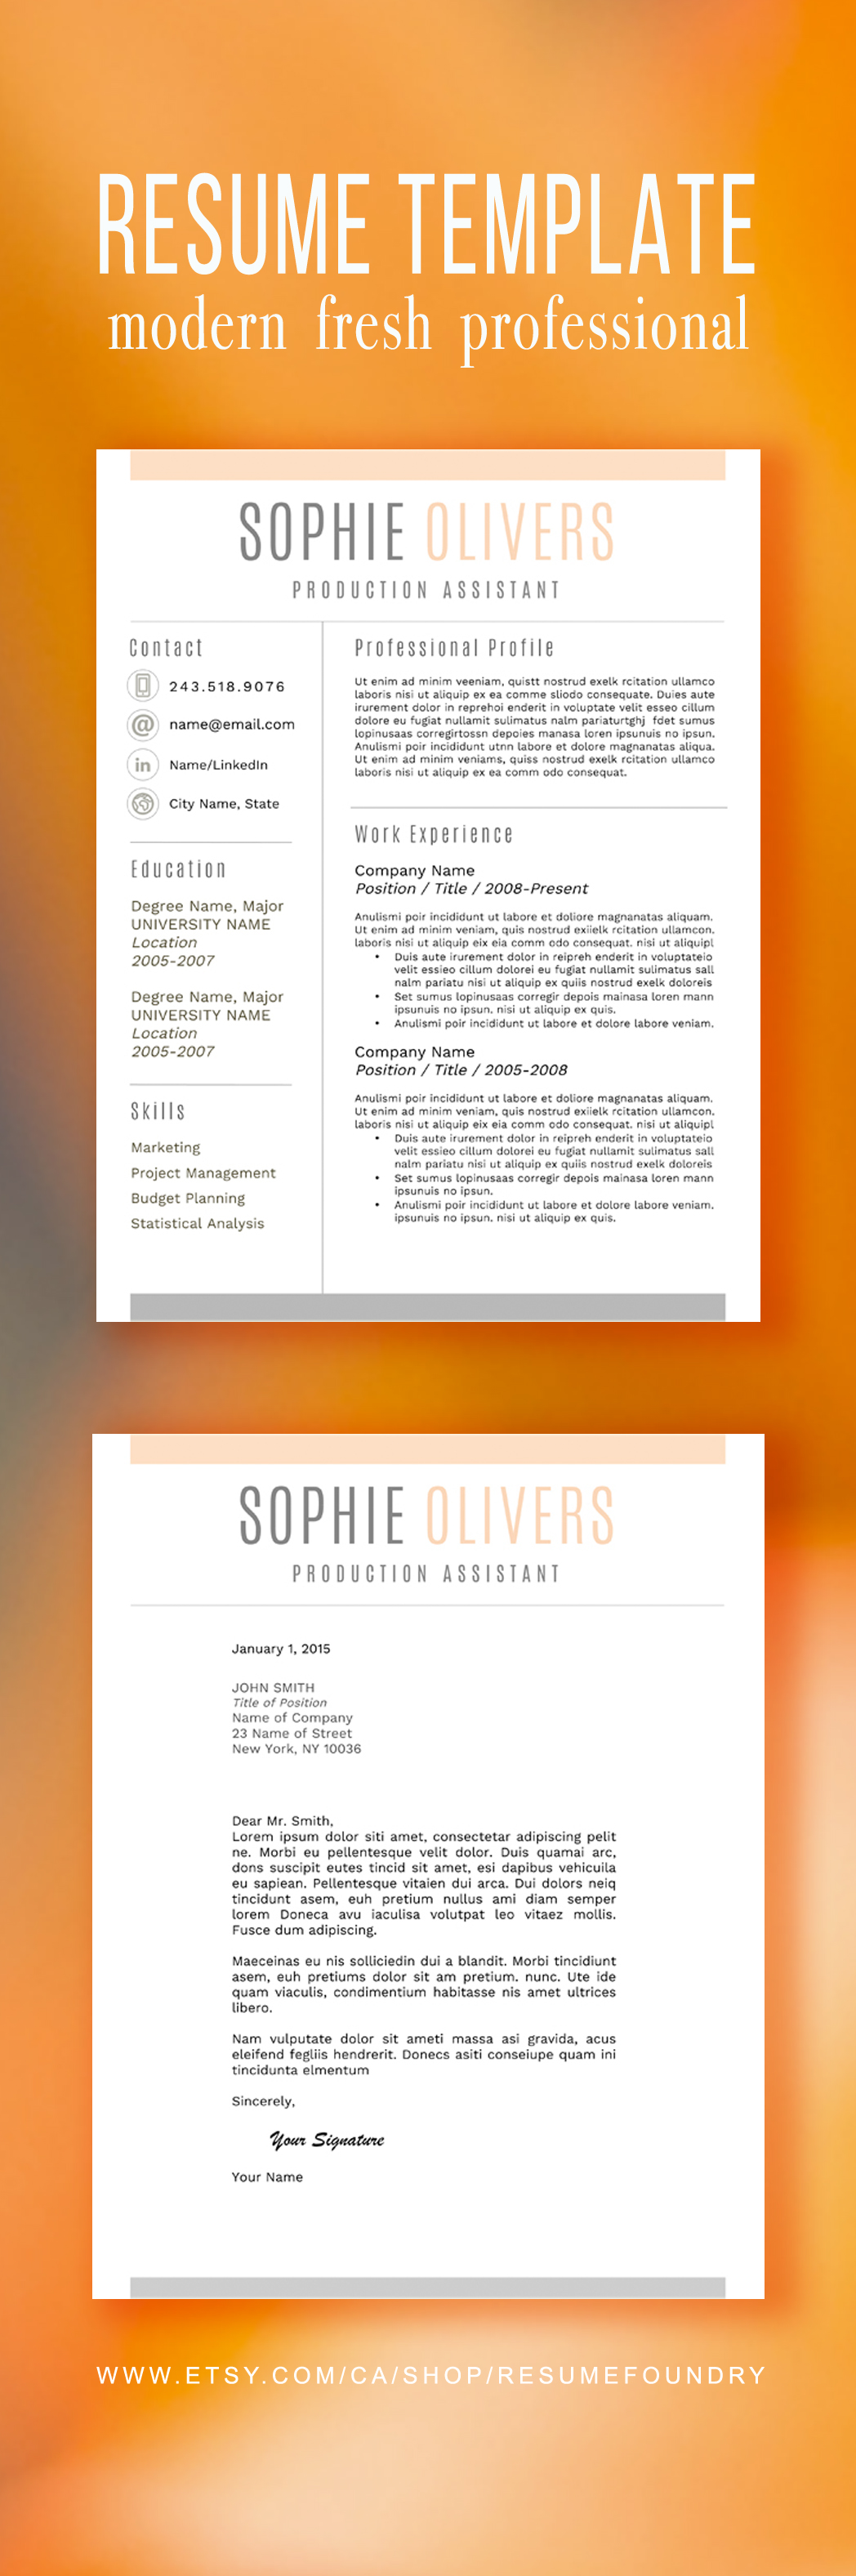 Simple And Elegant Resume Template Use With Microsoft Word